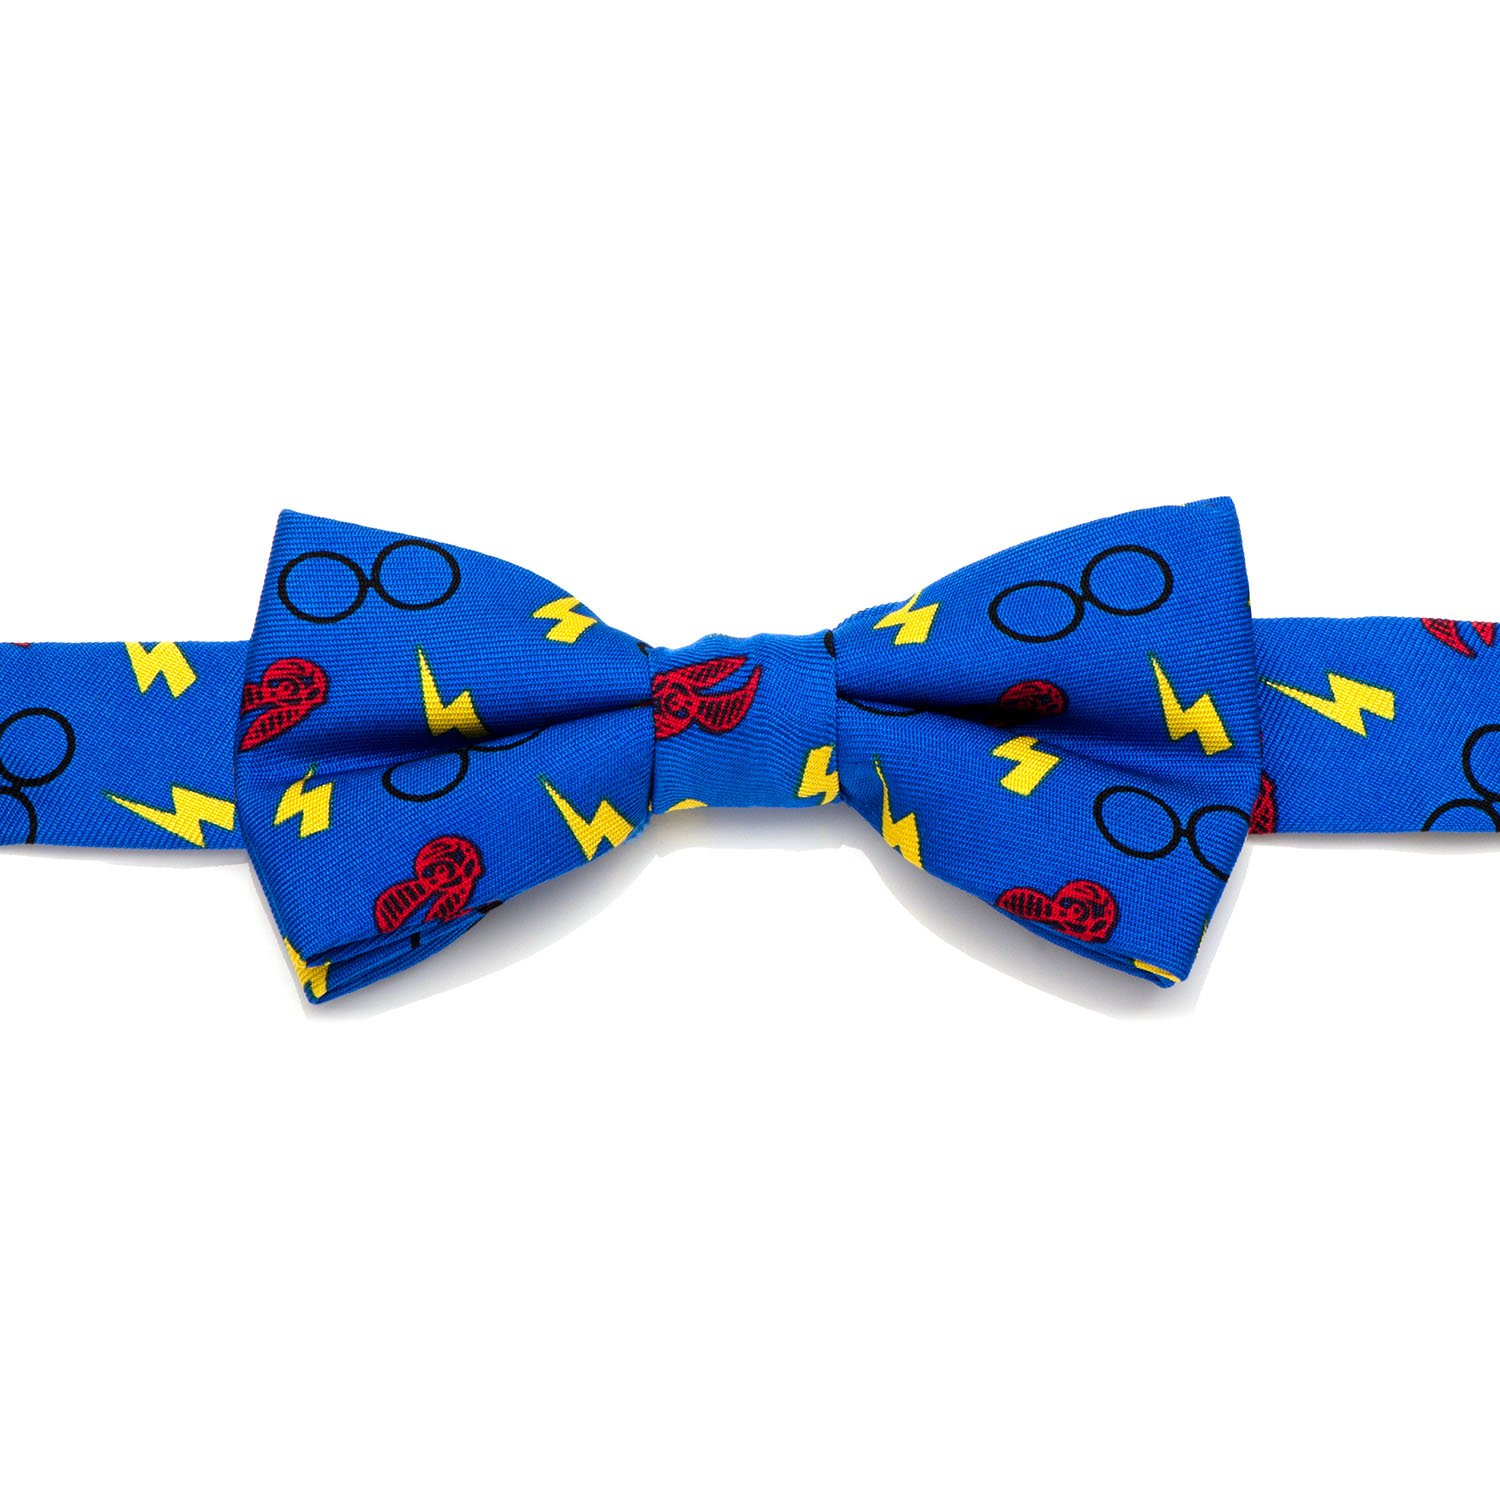 Harry Potter Harry Potter Blue Boys' Bow Tie, Officially Licensed